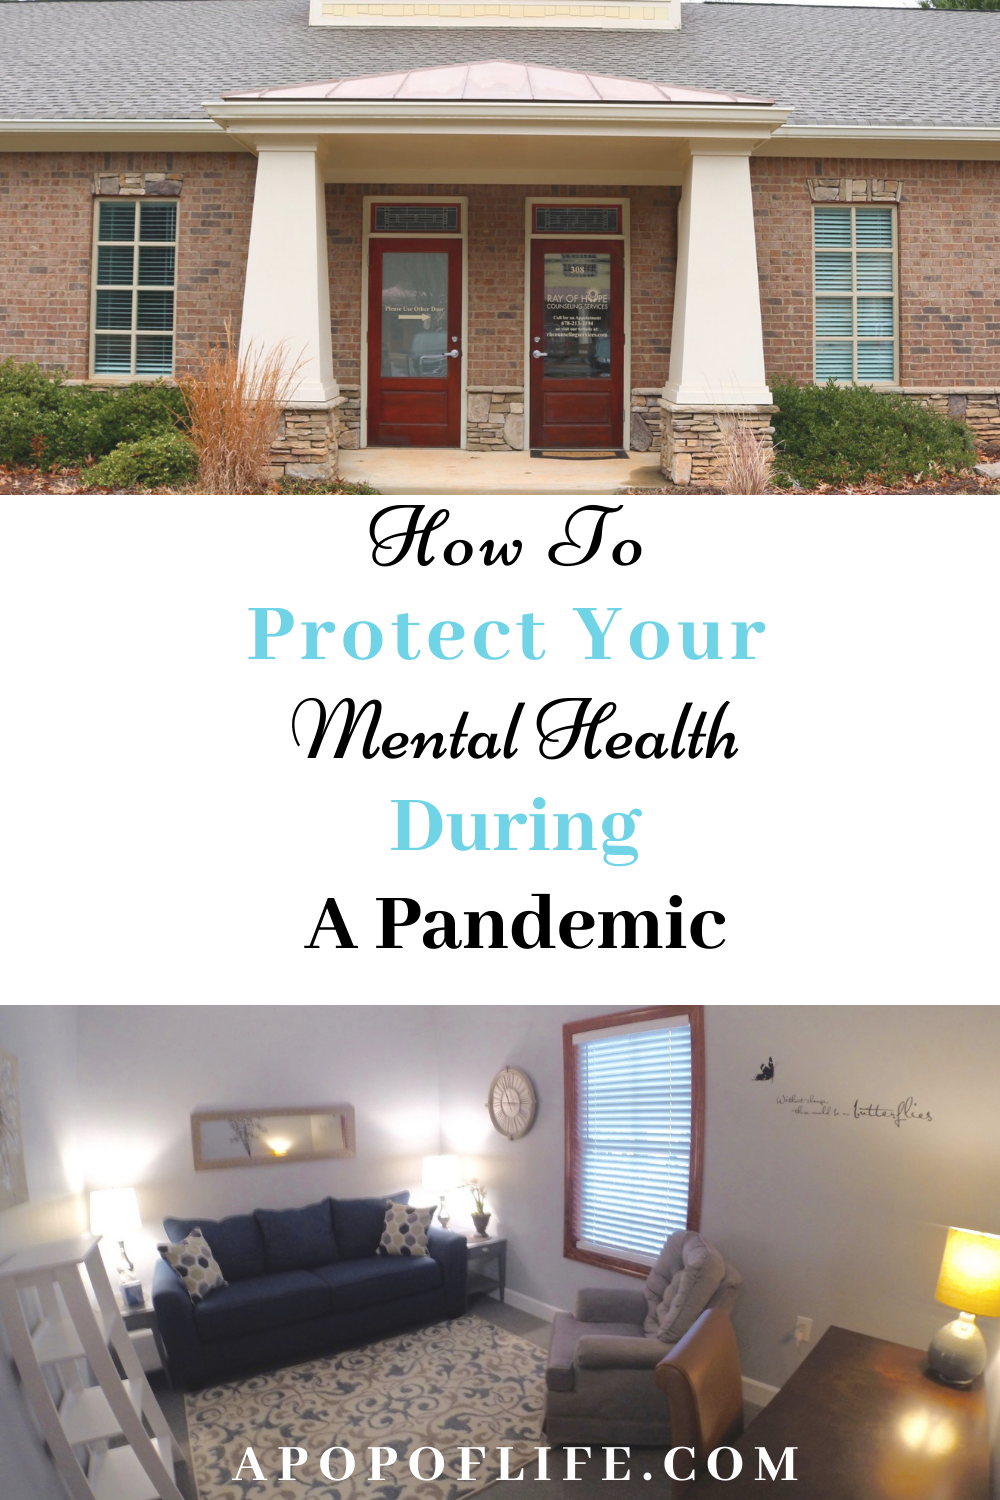 mental health during a pandemic, mental health tips, tips for mental wellness, tips for mental strength, quarantine tips, quarantine advice, how to survive quarantine, ways to survive quarantine, quarantining with kids, pandemic motivation, self care ideas for depression, mental health check in, self care for moms, mommy mental health